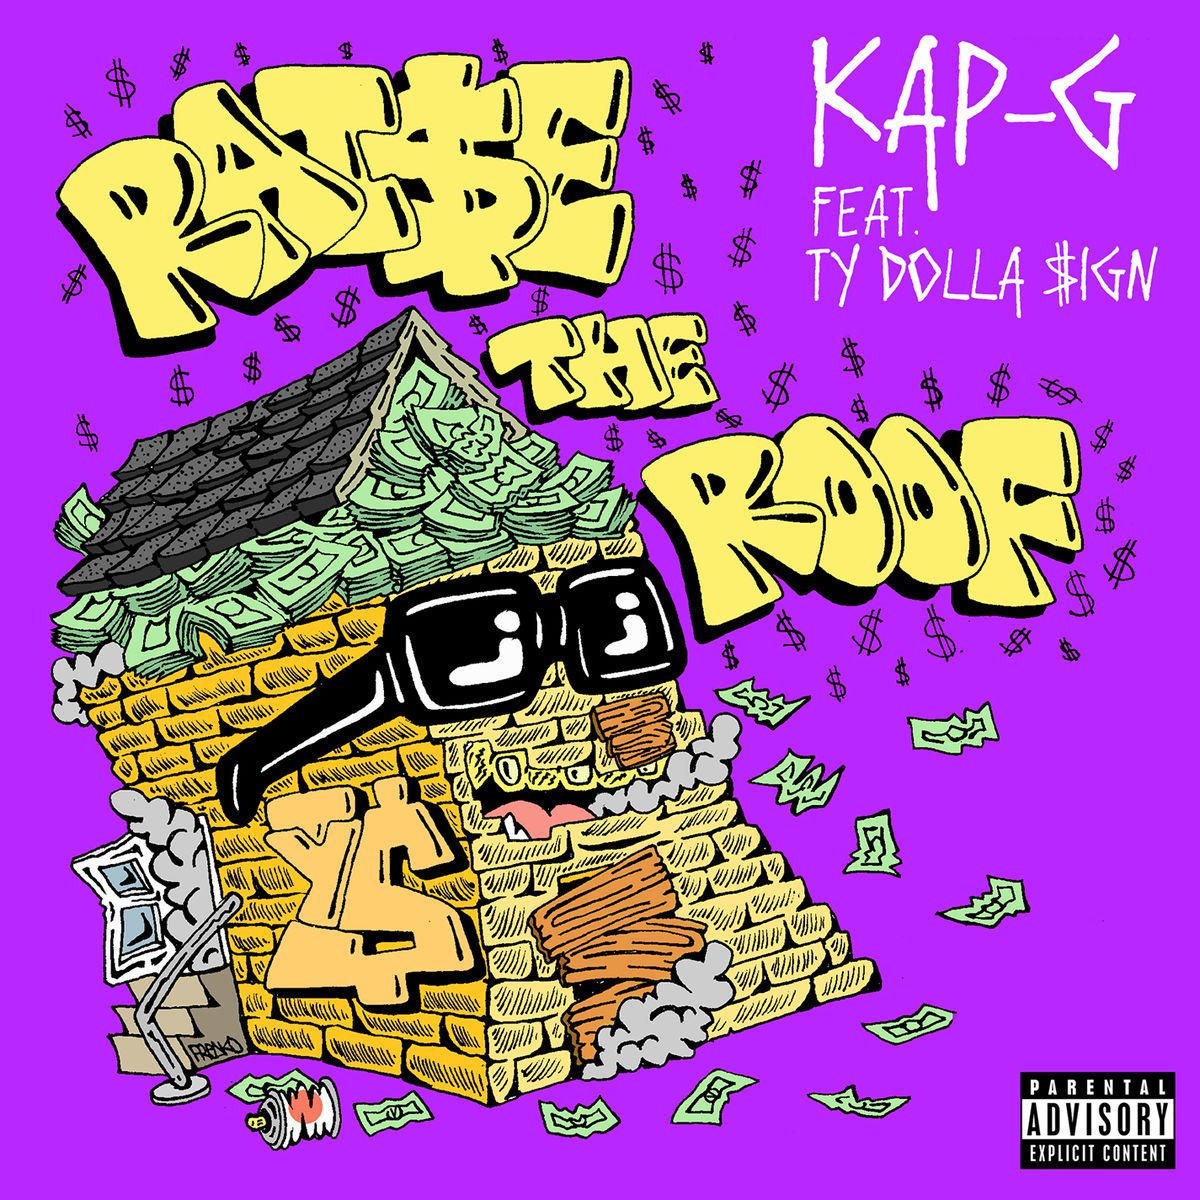 """New Music: Kap G – """"Raise the Roof"""" (feat. Ty Dolla $ign)"""